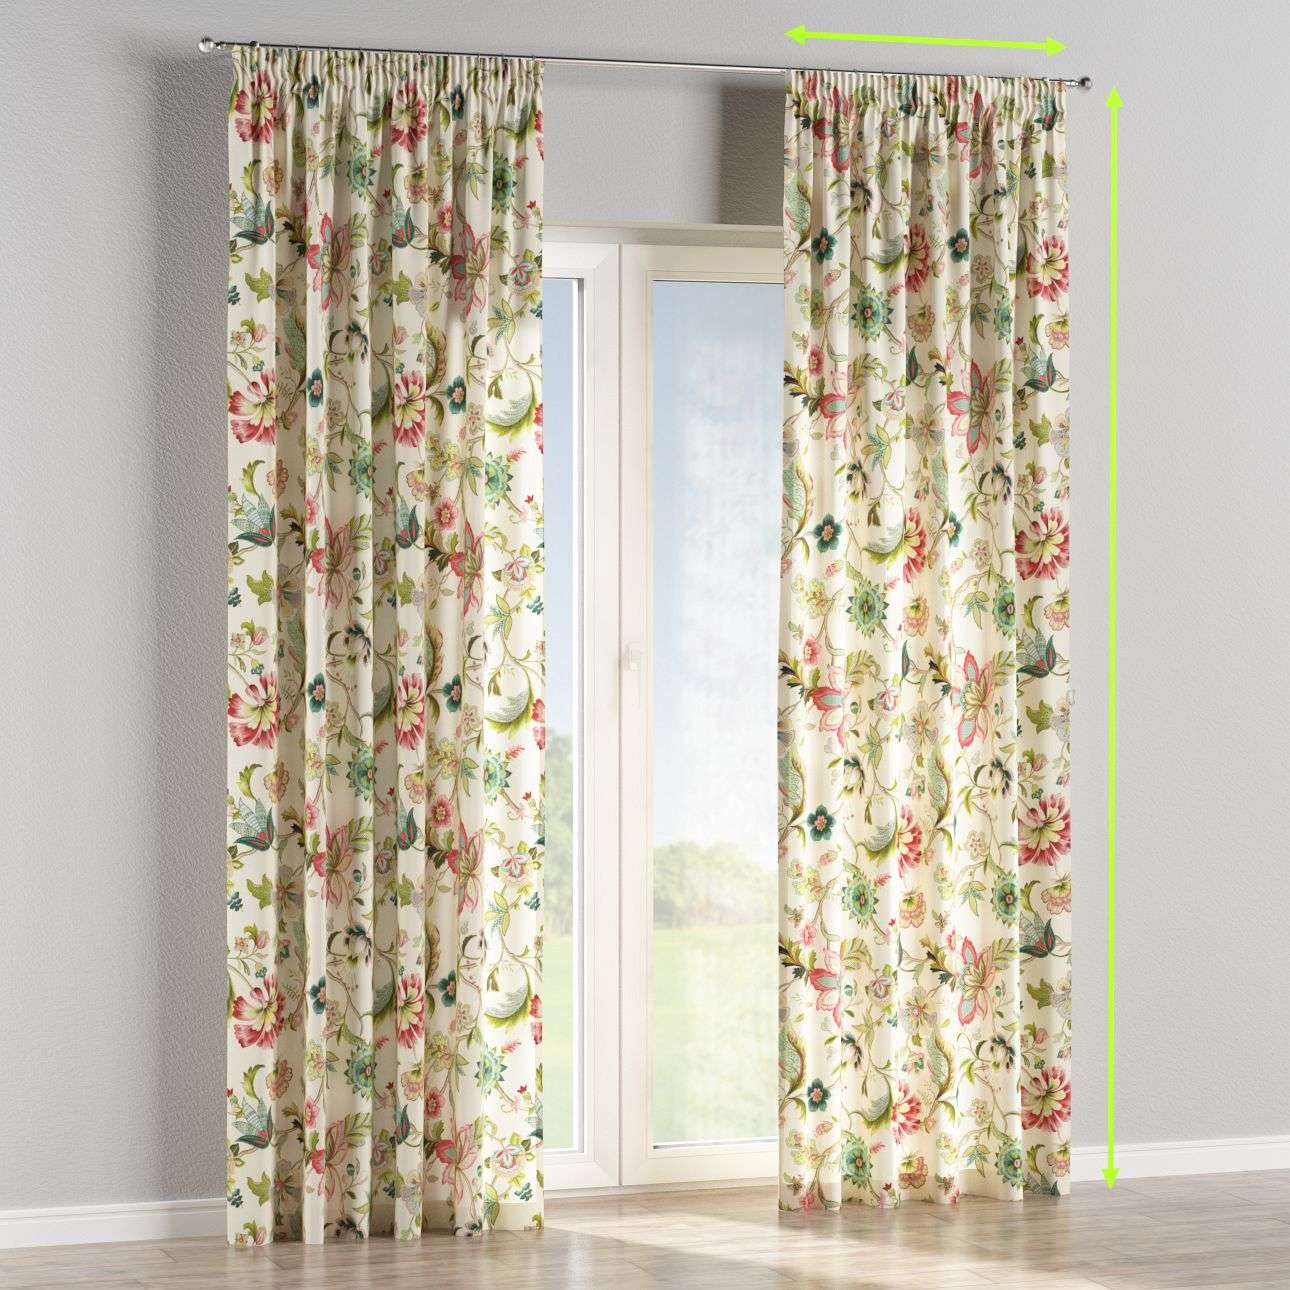 Pencil pleat curtain in collection Londres, fabric: 122-00